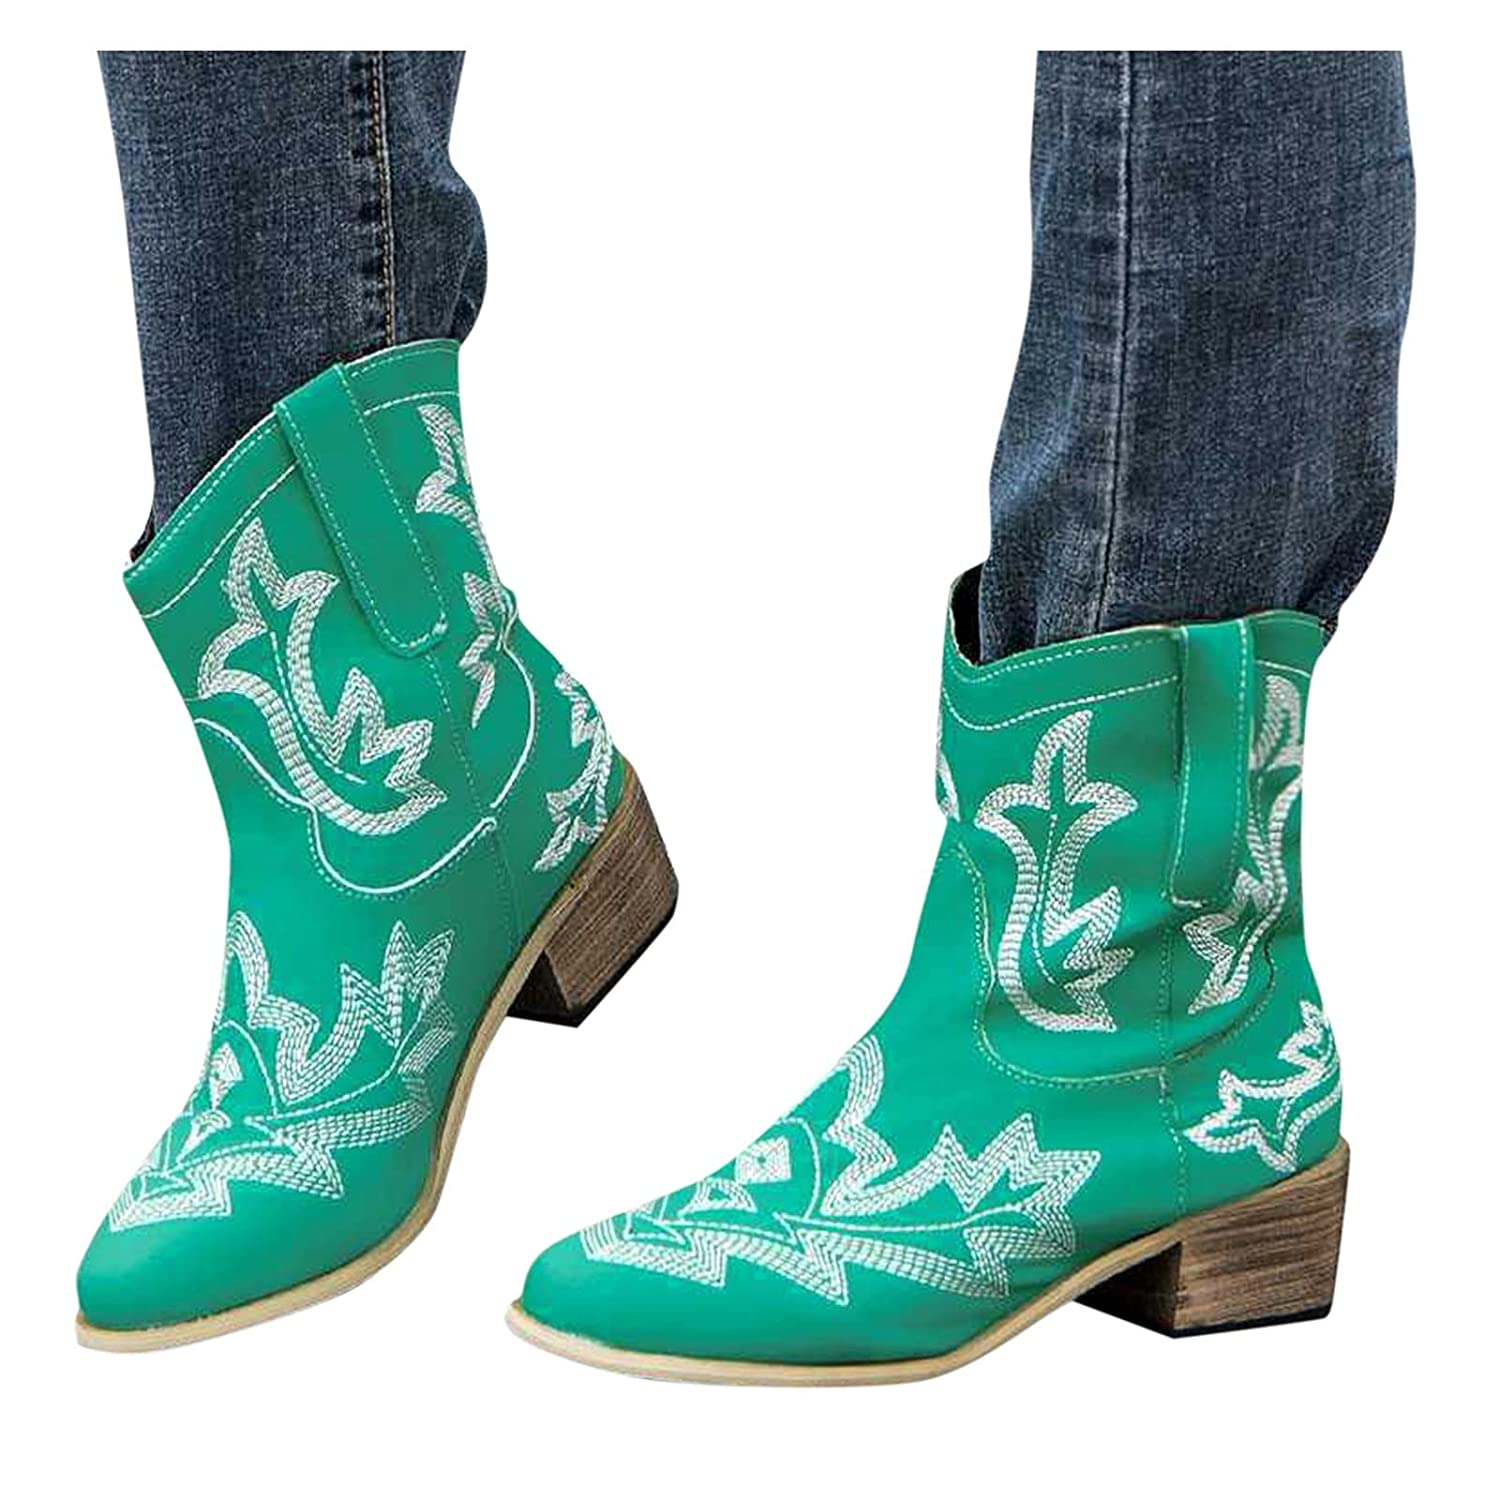 Reokoou Women's Dealing full price reduction Western Bootie Retro Discount mail order Embroidery Slip On Leather